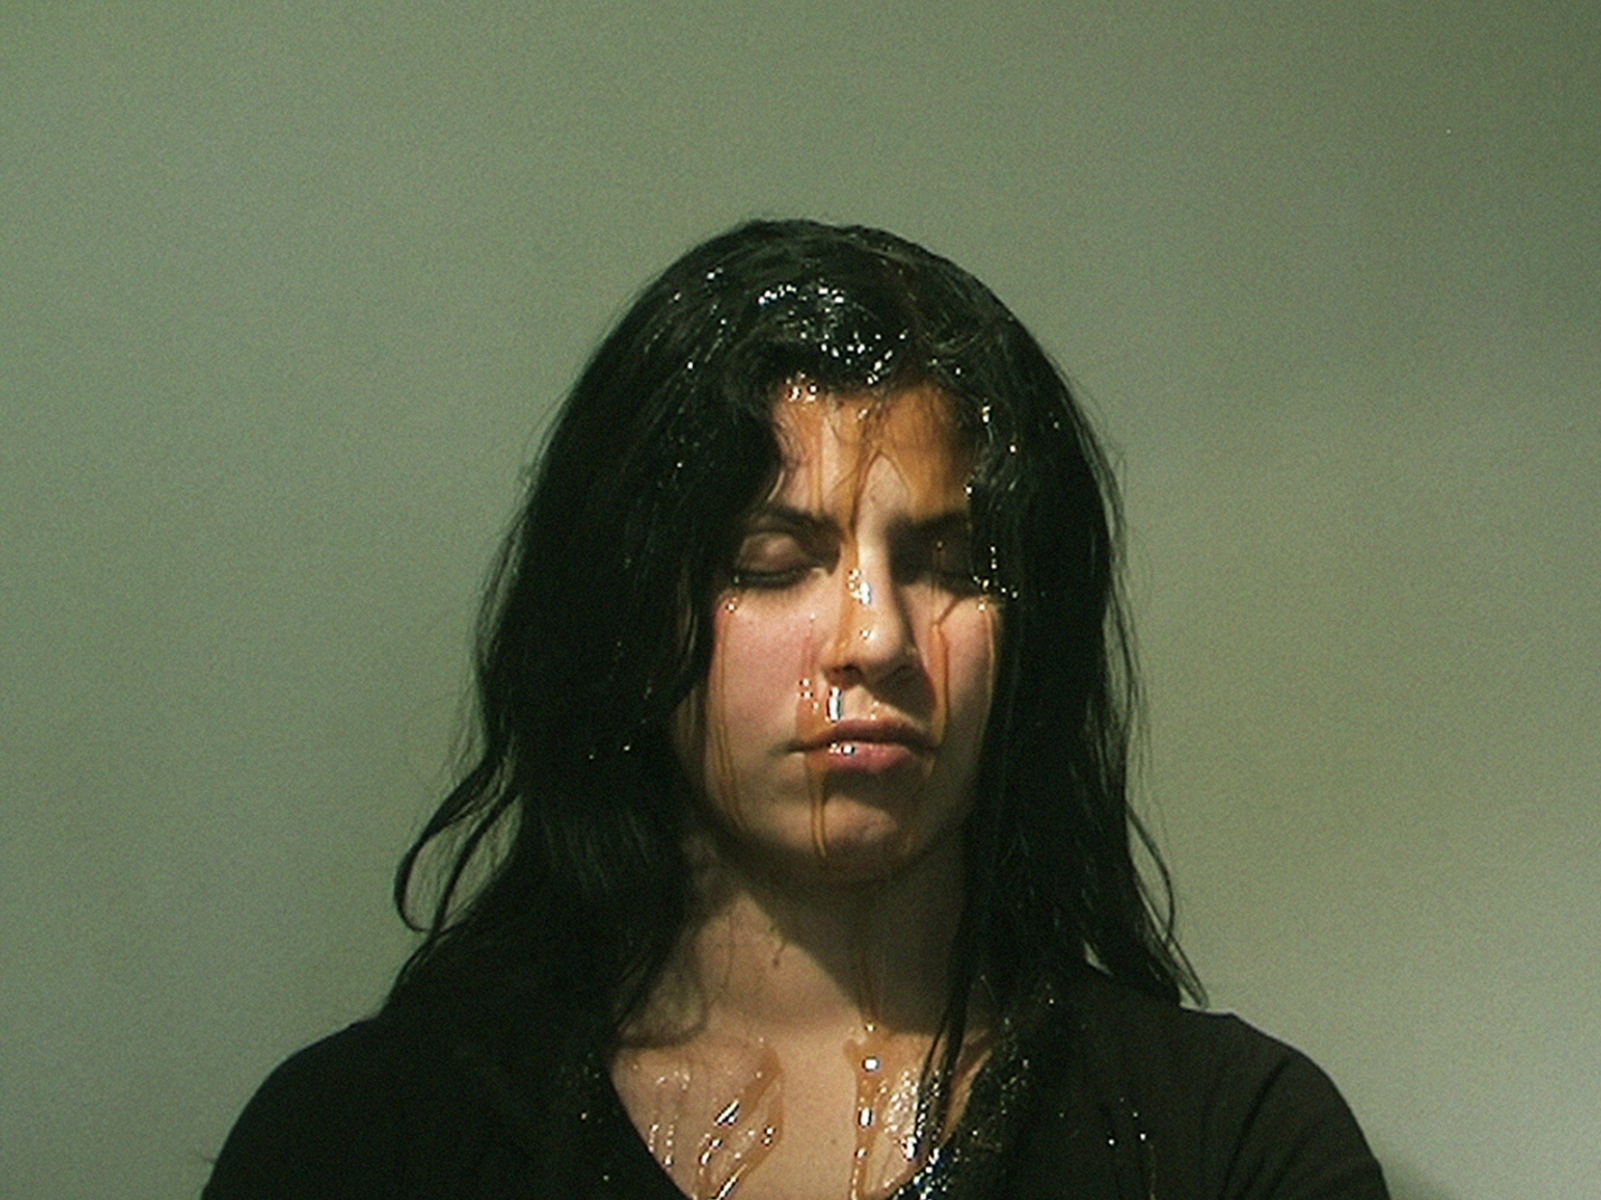 6. A drop of honey, 2013 - Performance, Video Still (Naivy Perez)